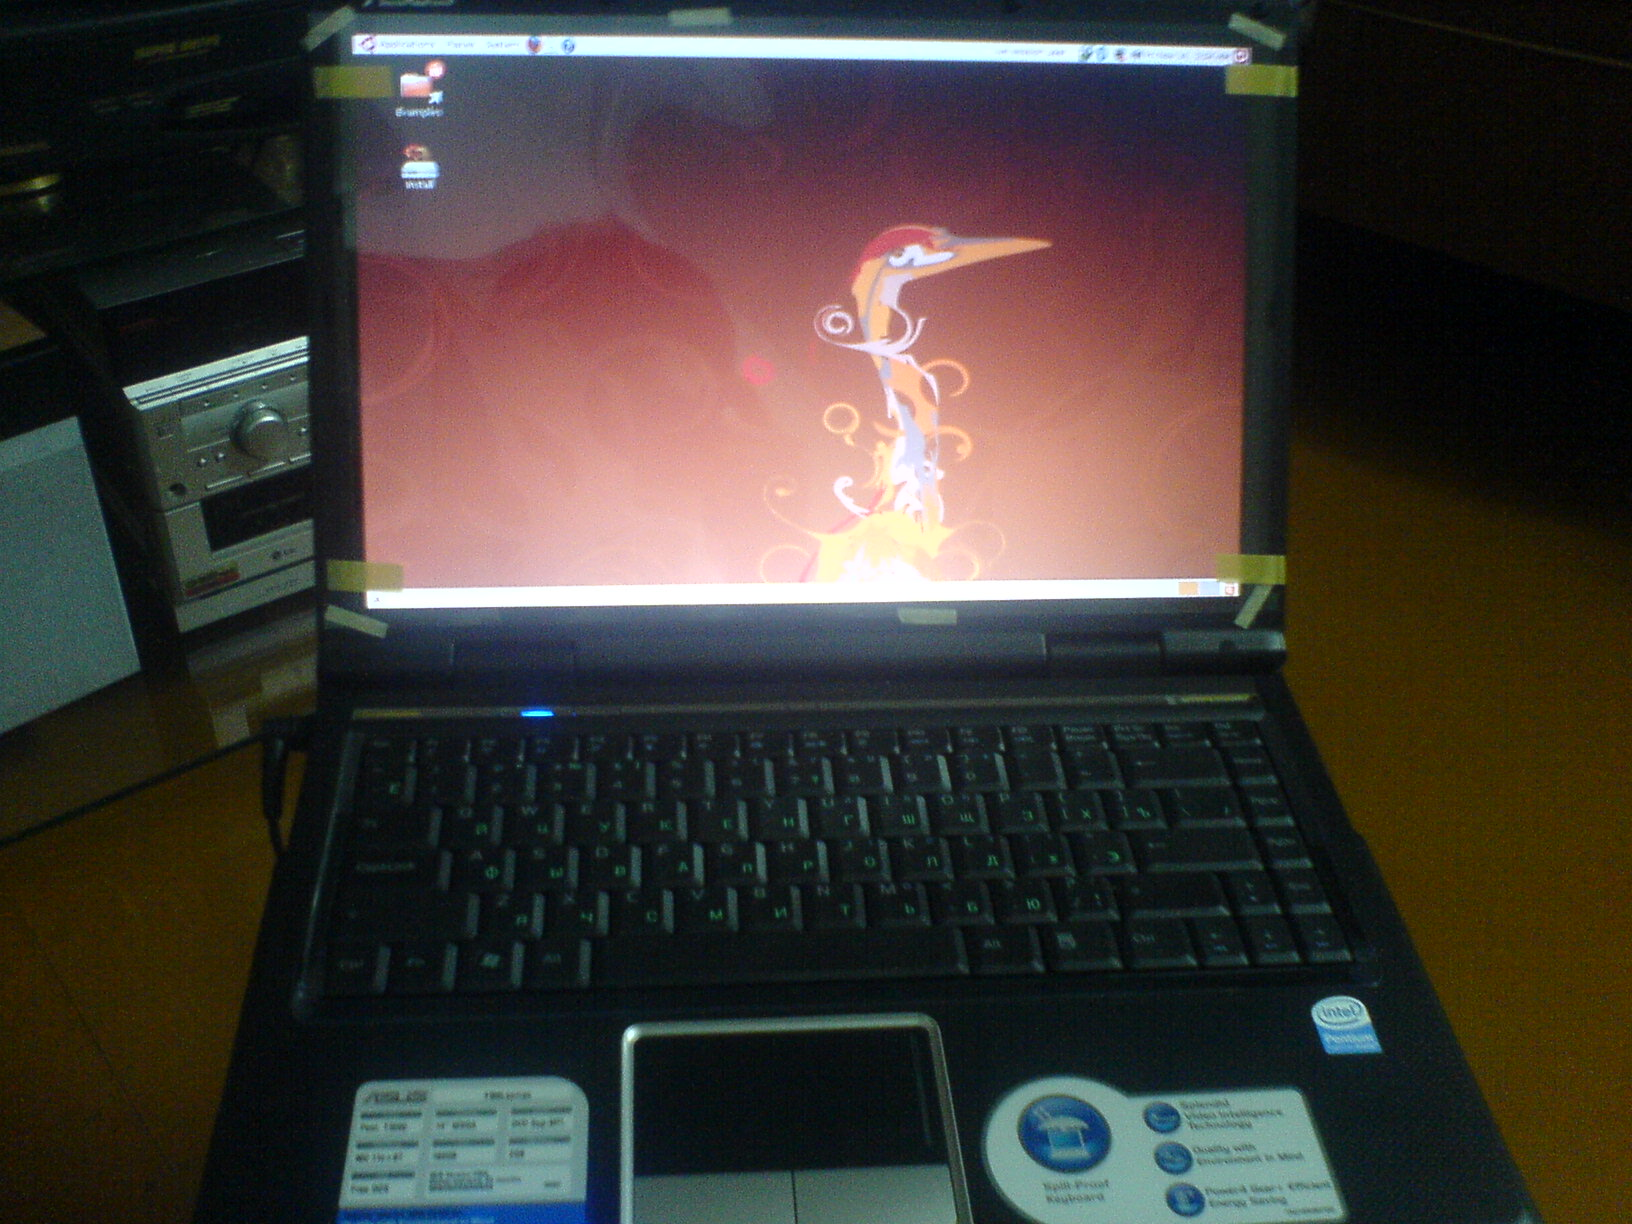 Driver Xp Asus F80l Specification